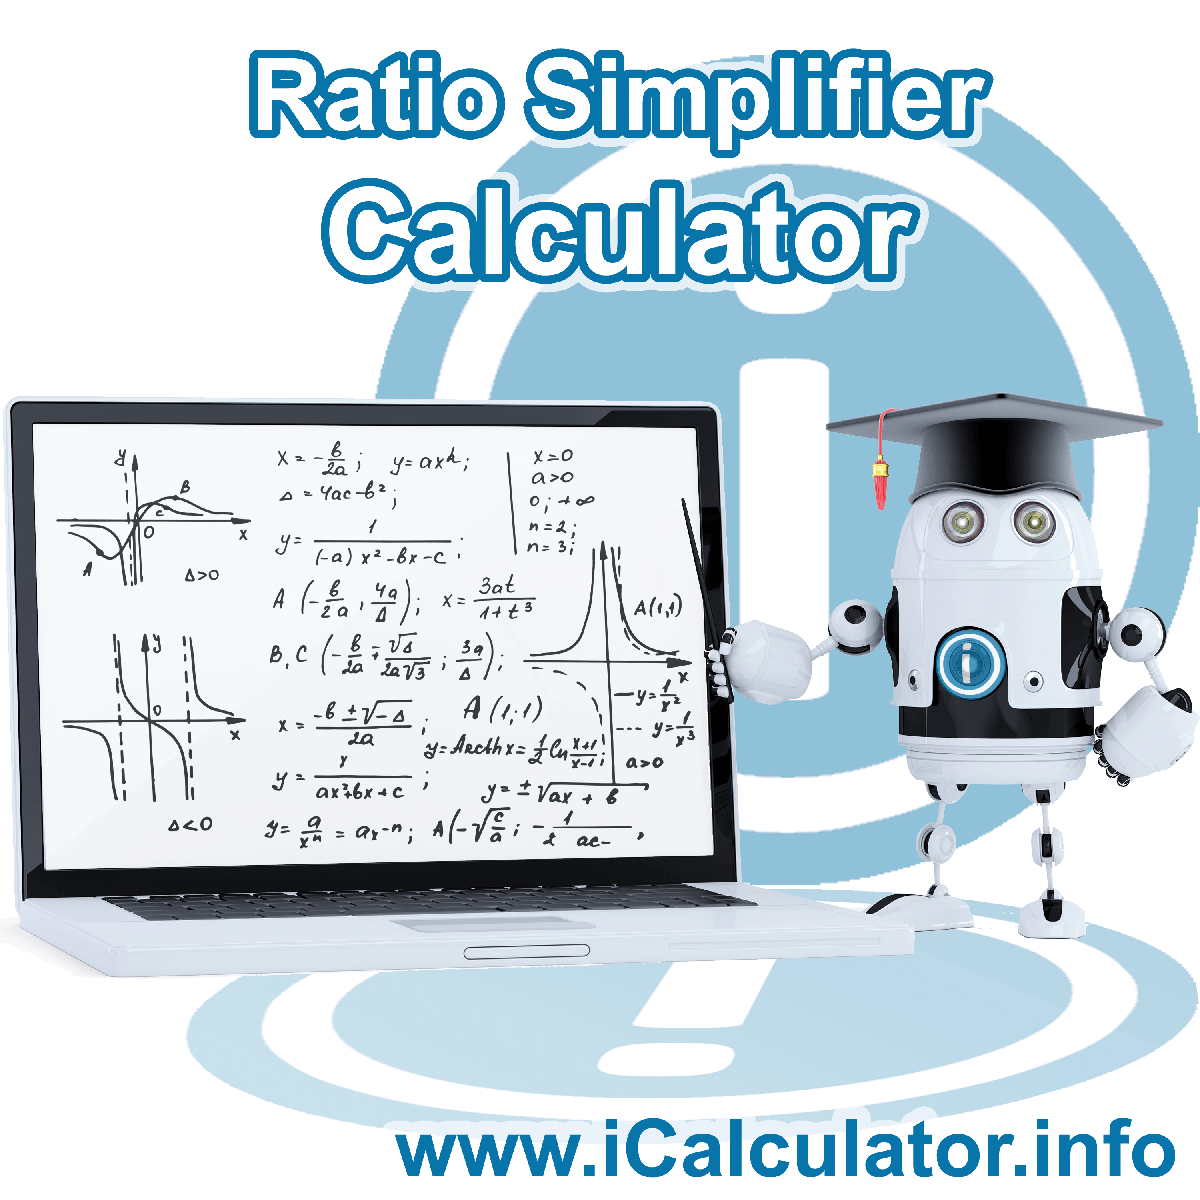 Ratio Simplifier Calculator. This image shows a formula for simplyfying ratios with associated calculations used by the Ratio Simplifier Calculator